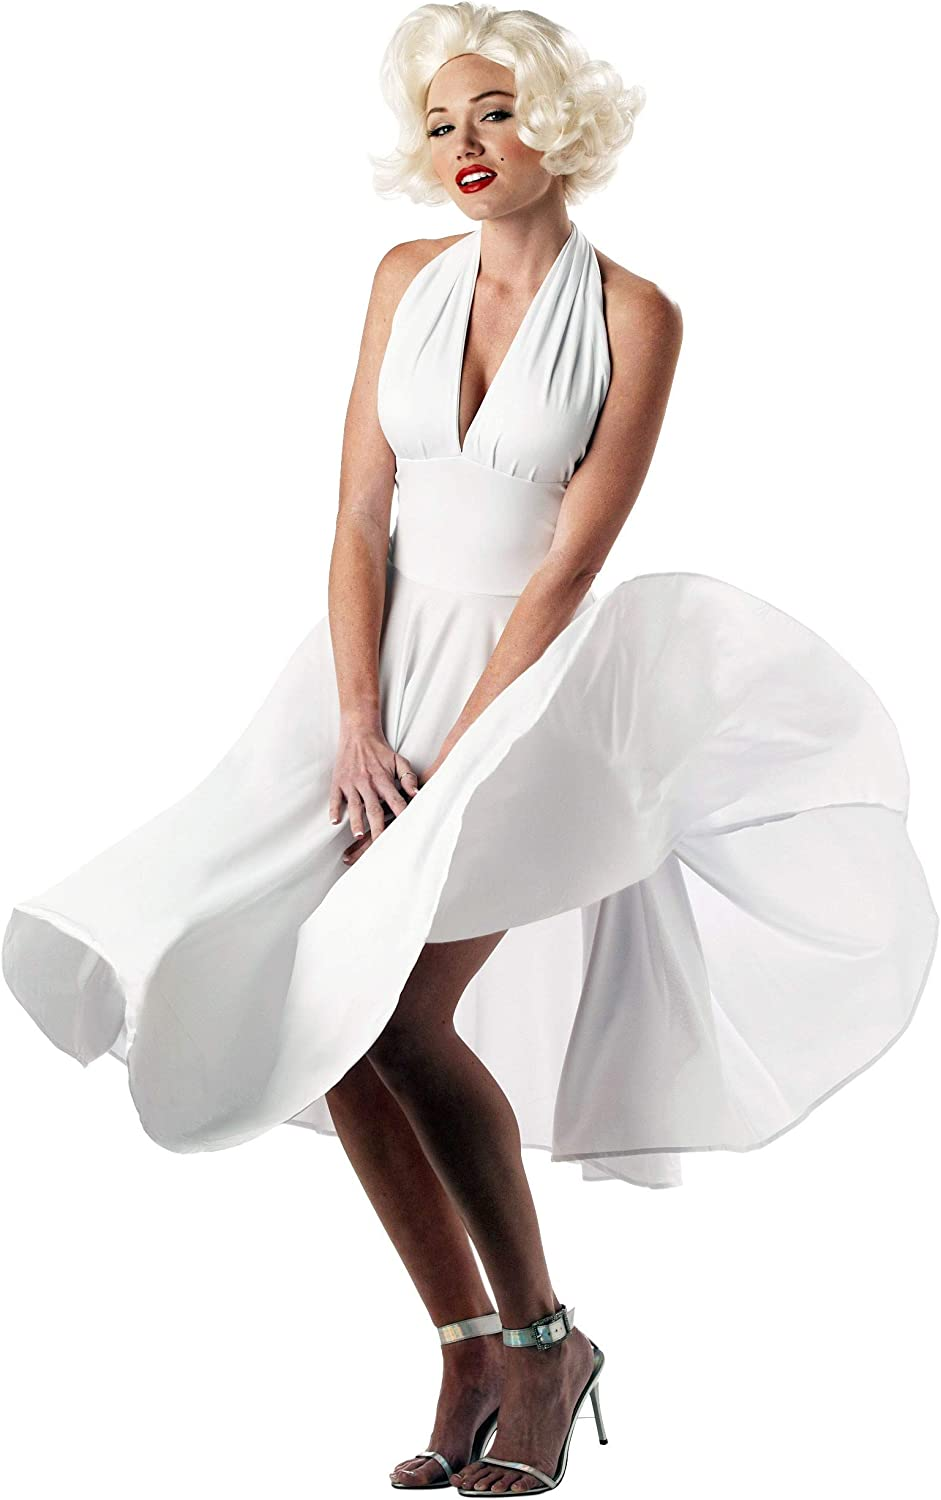 Bargain Marilyn Monroe Costume Dress Clearance SALE Limited time